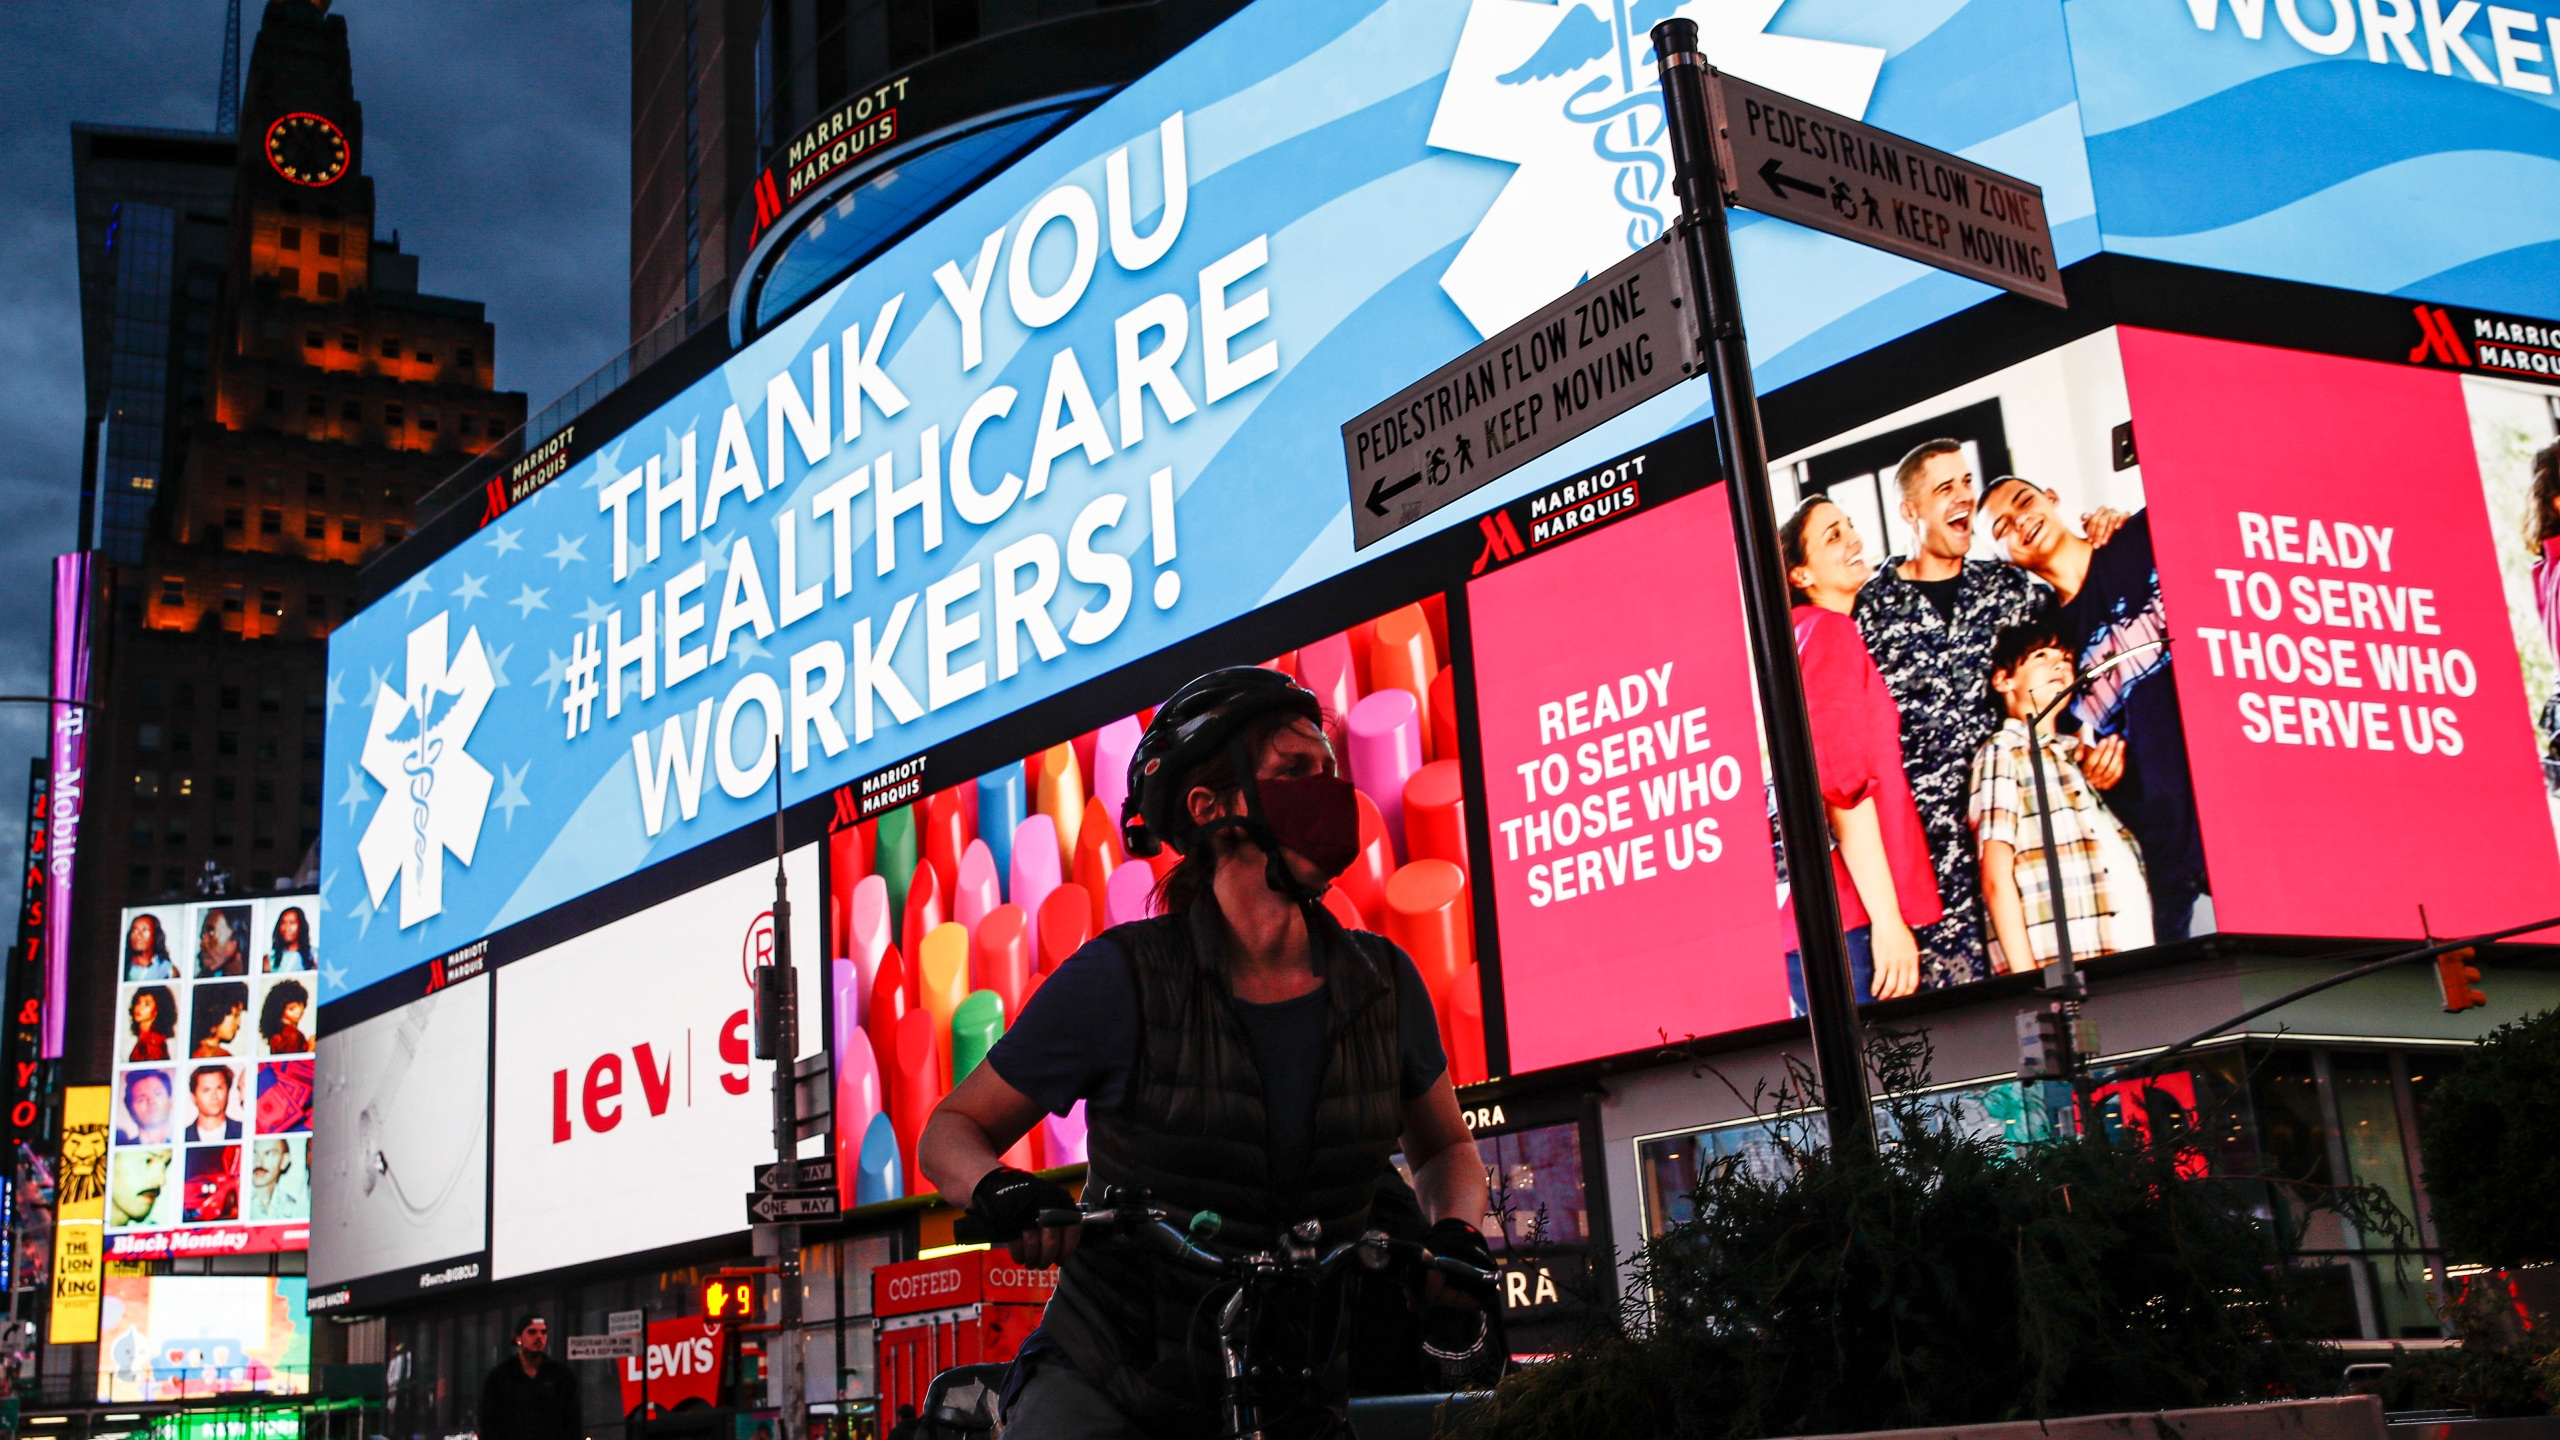 A screen displaying a message thanking healthcare workers due to COVID-19 concerns is displayed in a sparsely populated Times Square, Friday, March 20, 2020, in New York. (AP Photo/John Minchillo)